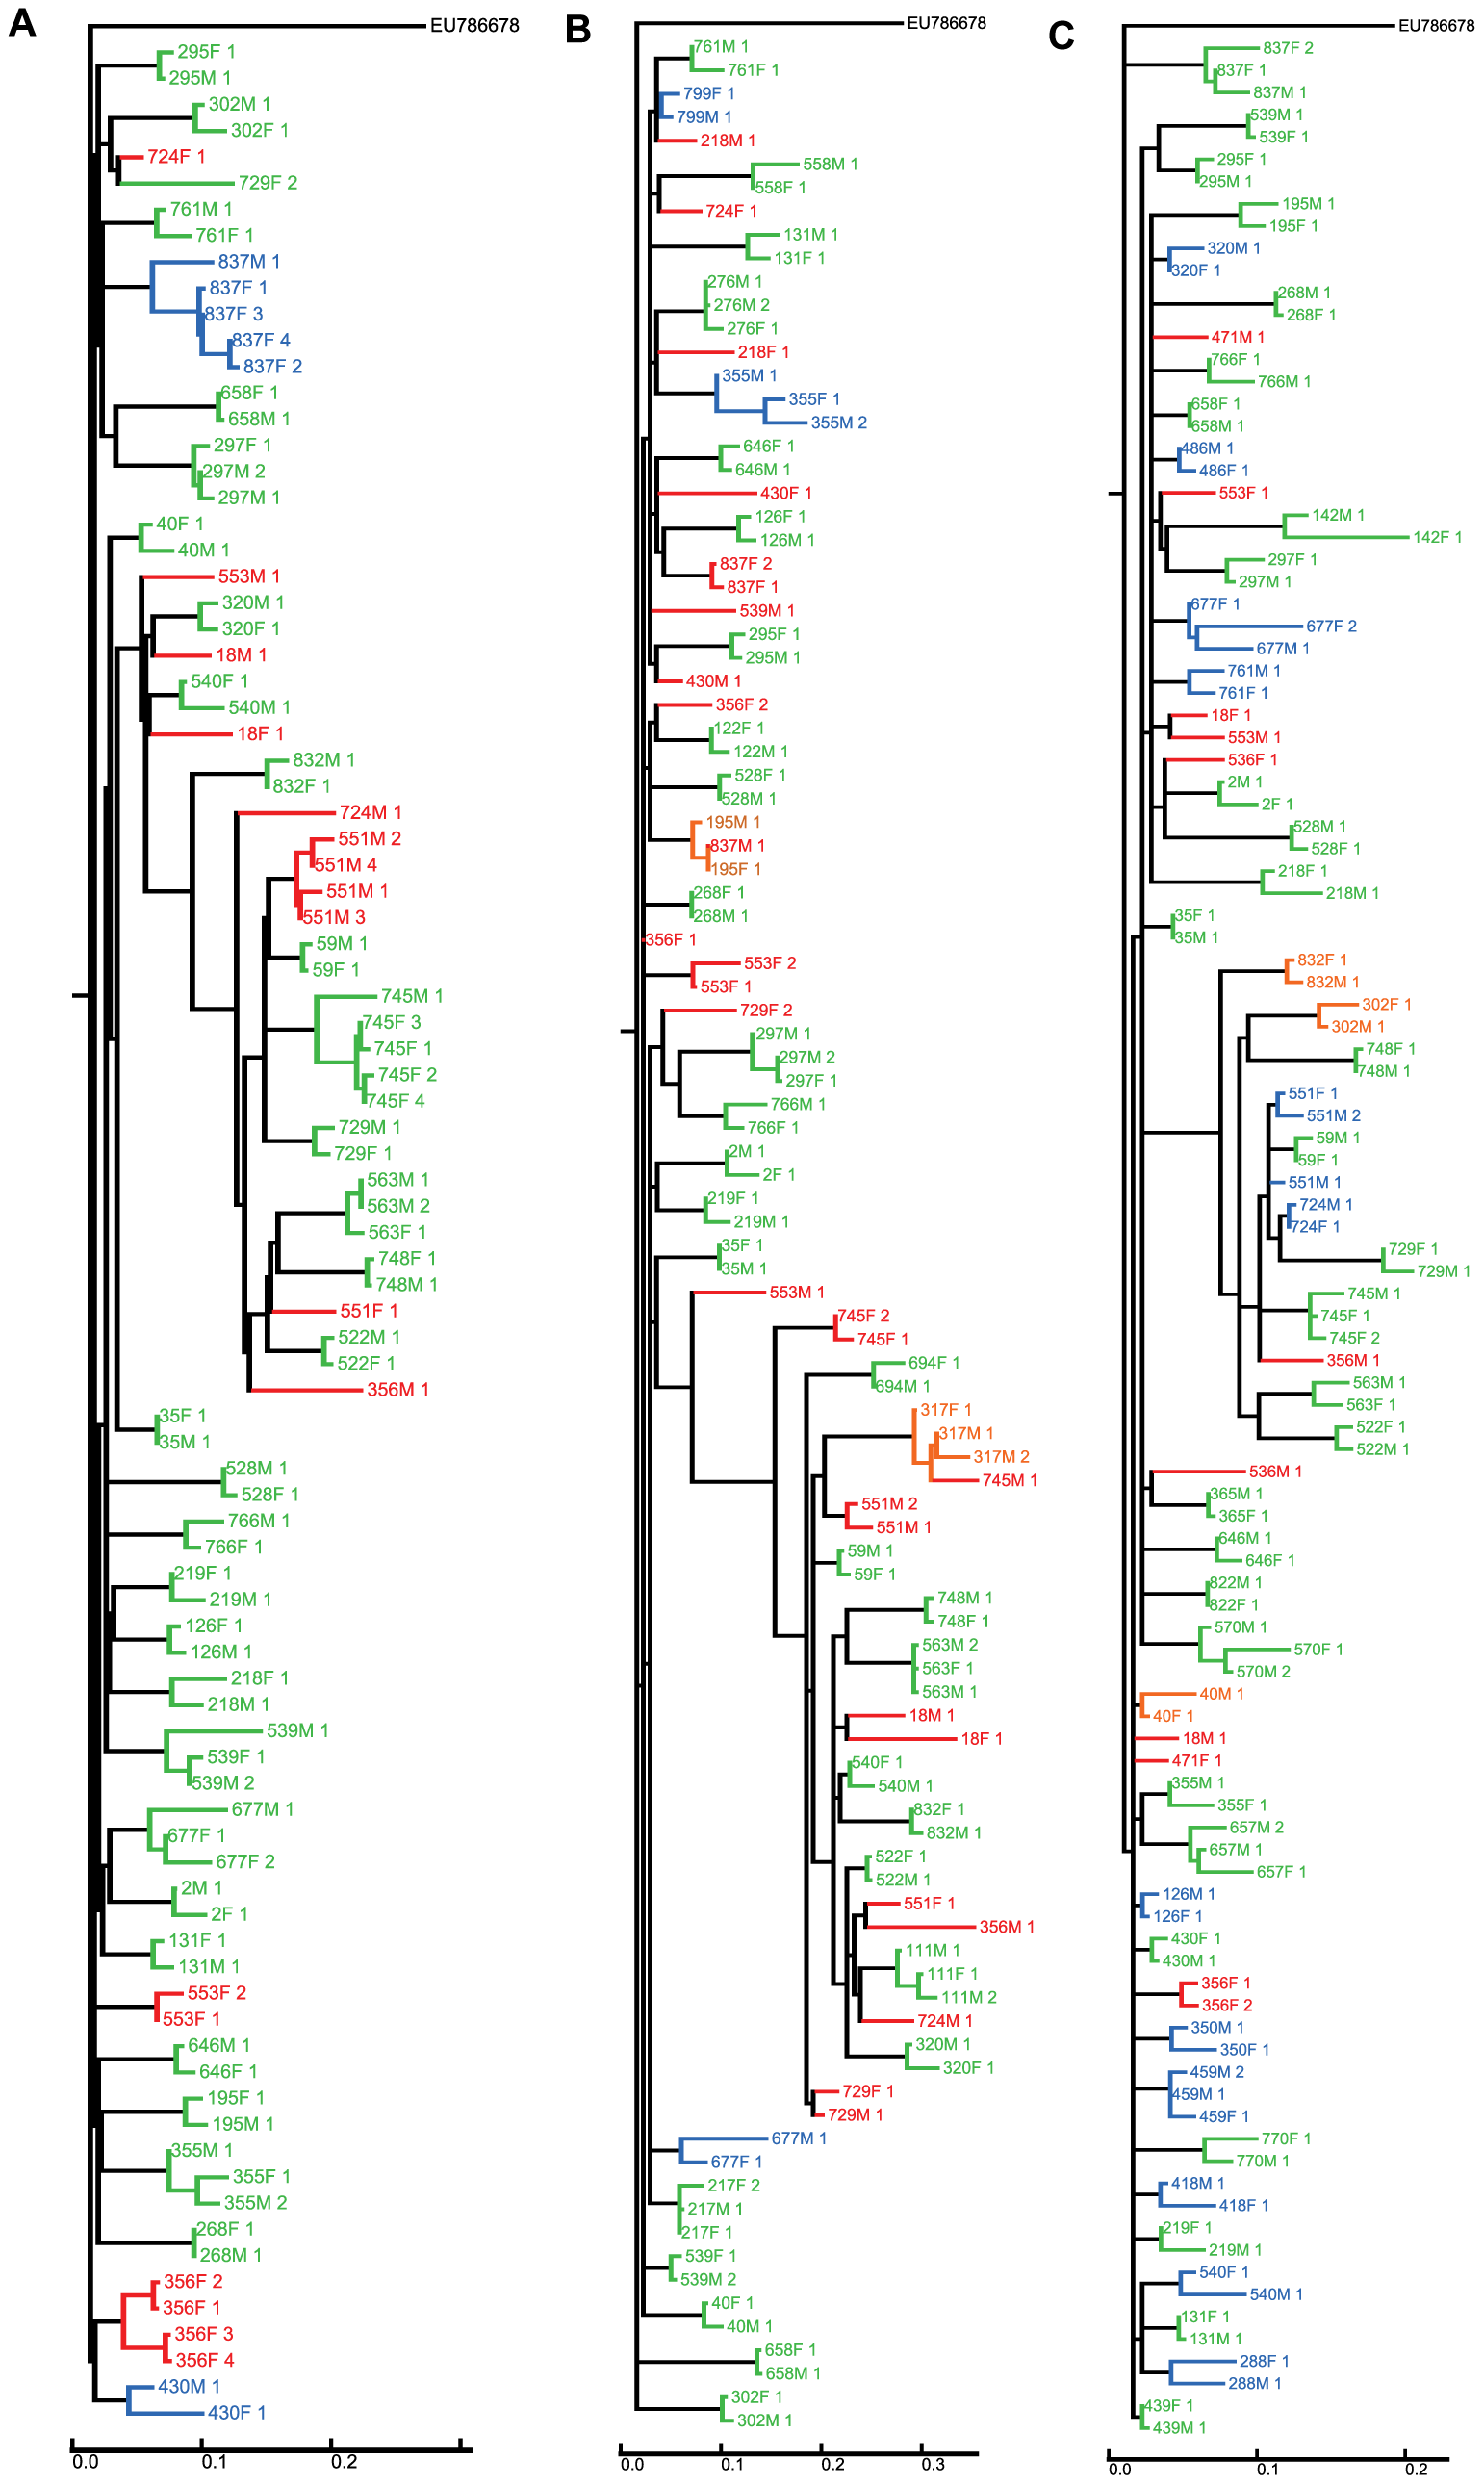 Clustering of sequences from the couples for whom sequence data was available.